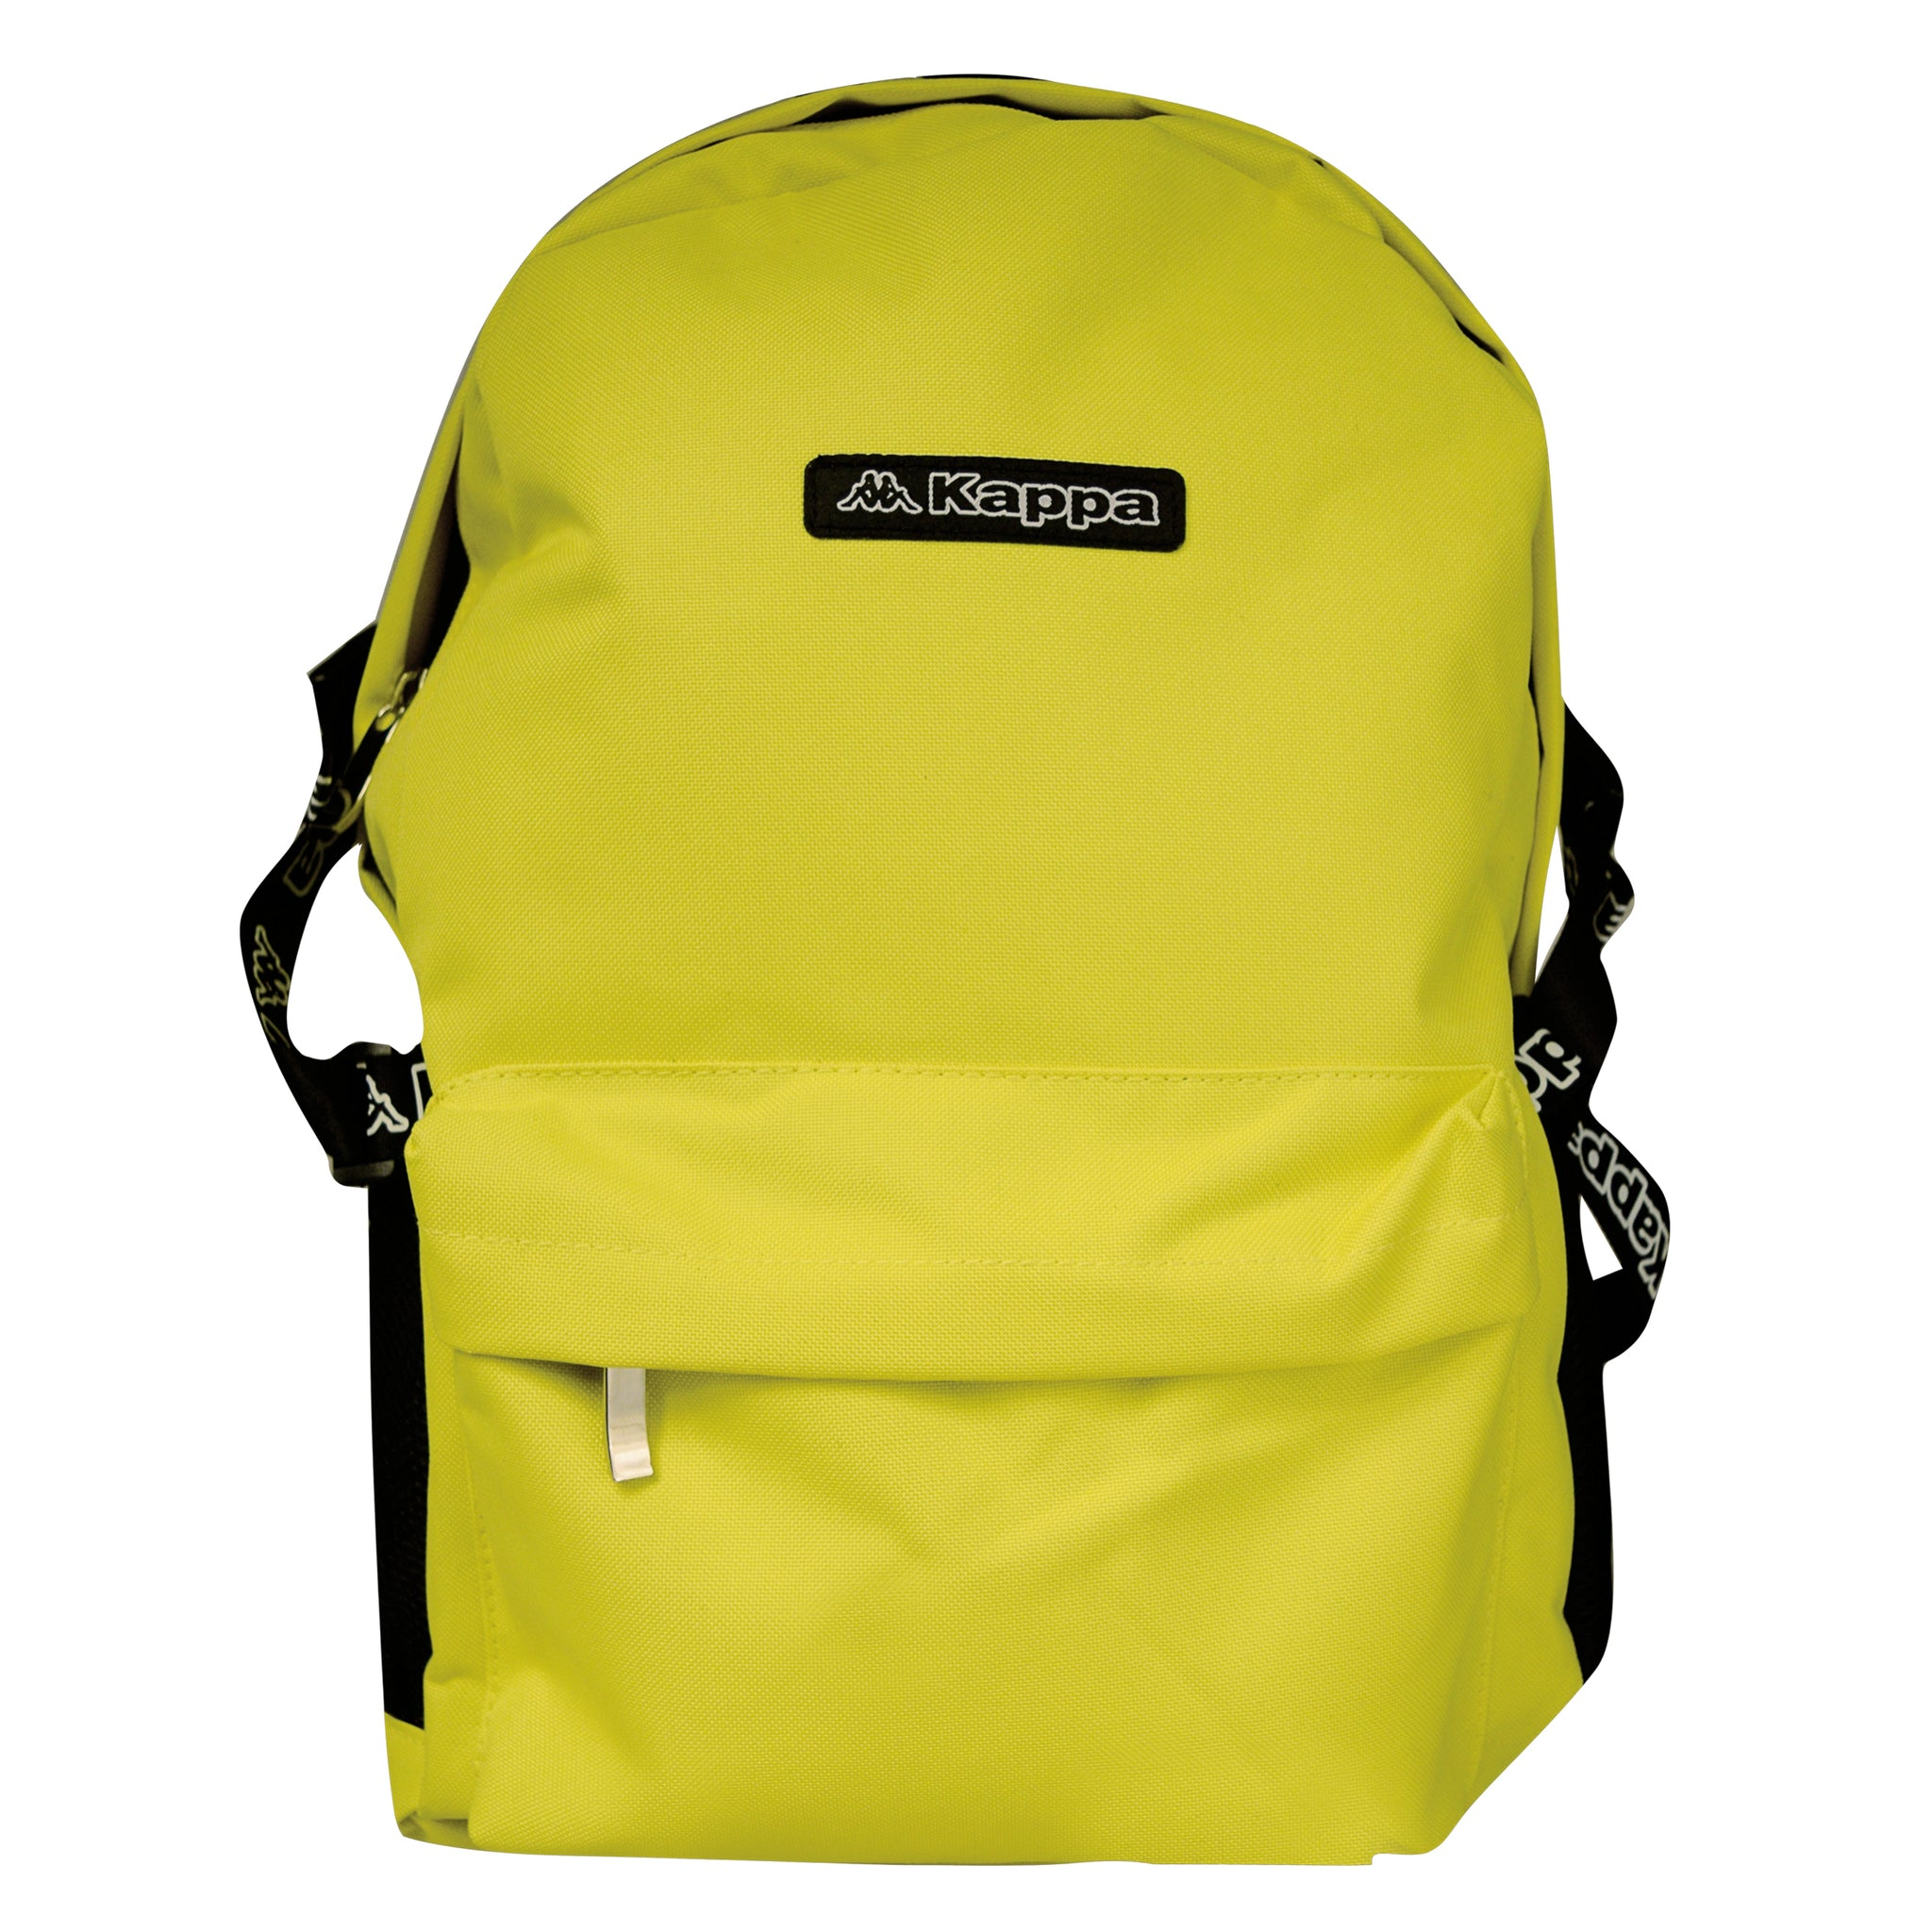 BackPack Lifestyle MTG001-2